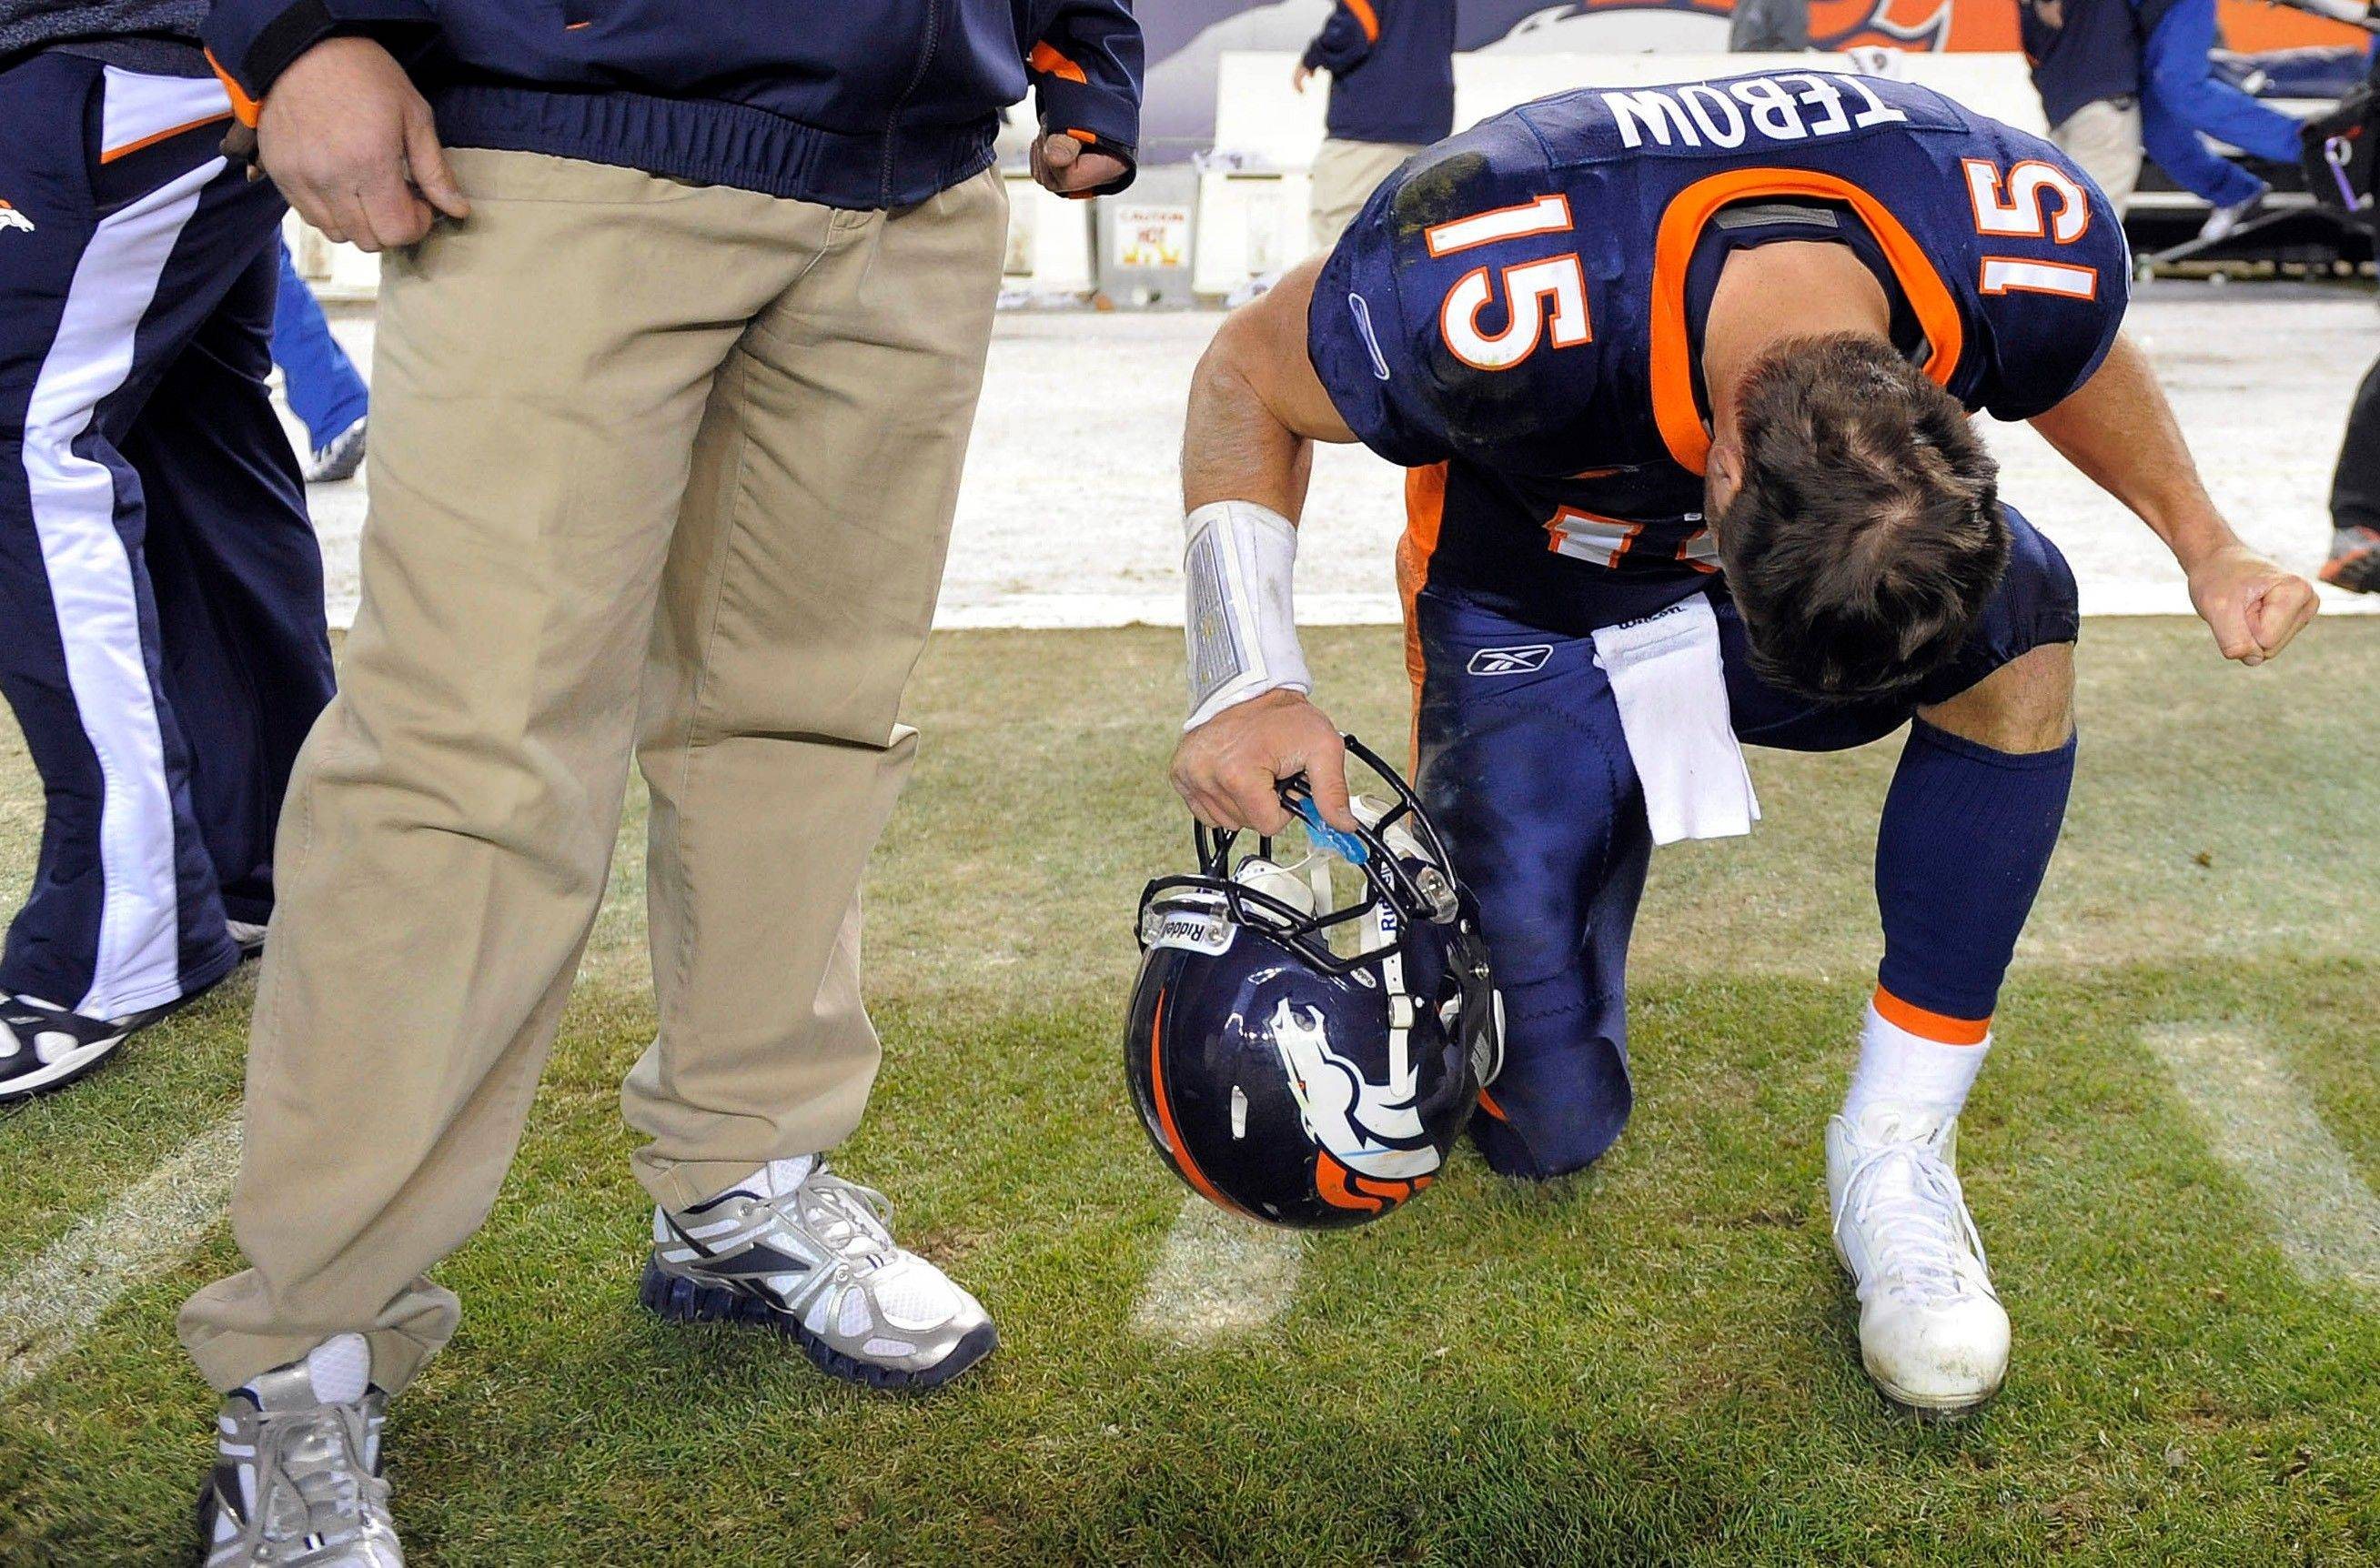 Denver Broncos quarterback Tim Tebow (15) reacts after kicker Matt Prater (5) kicked a 51-yard field goal to win the game in overtime over the Chicago Bears.